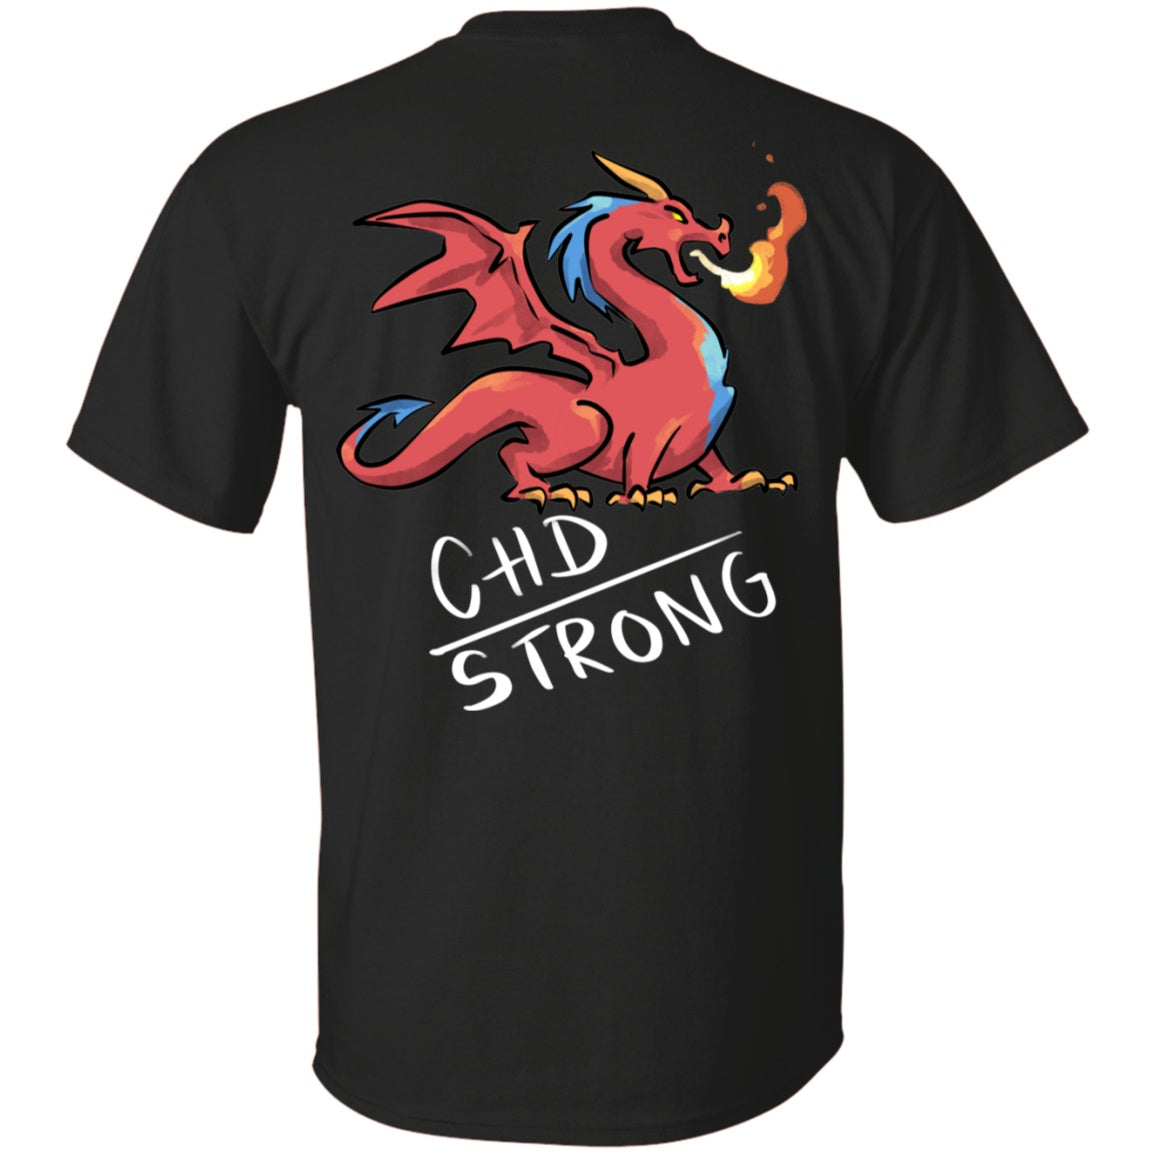 CHD Strong Dragon Unisex T-Shirt - The Unchargeables